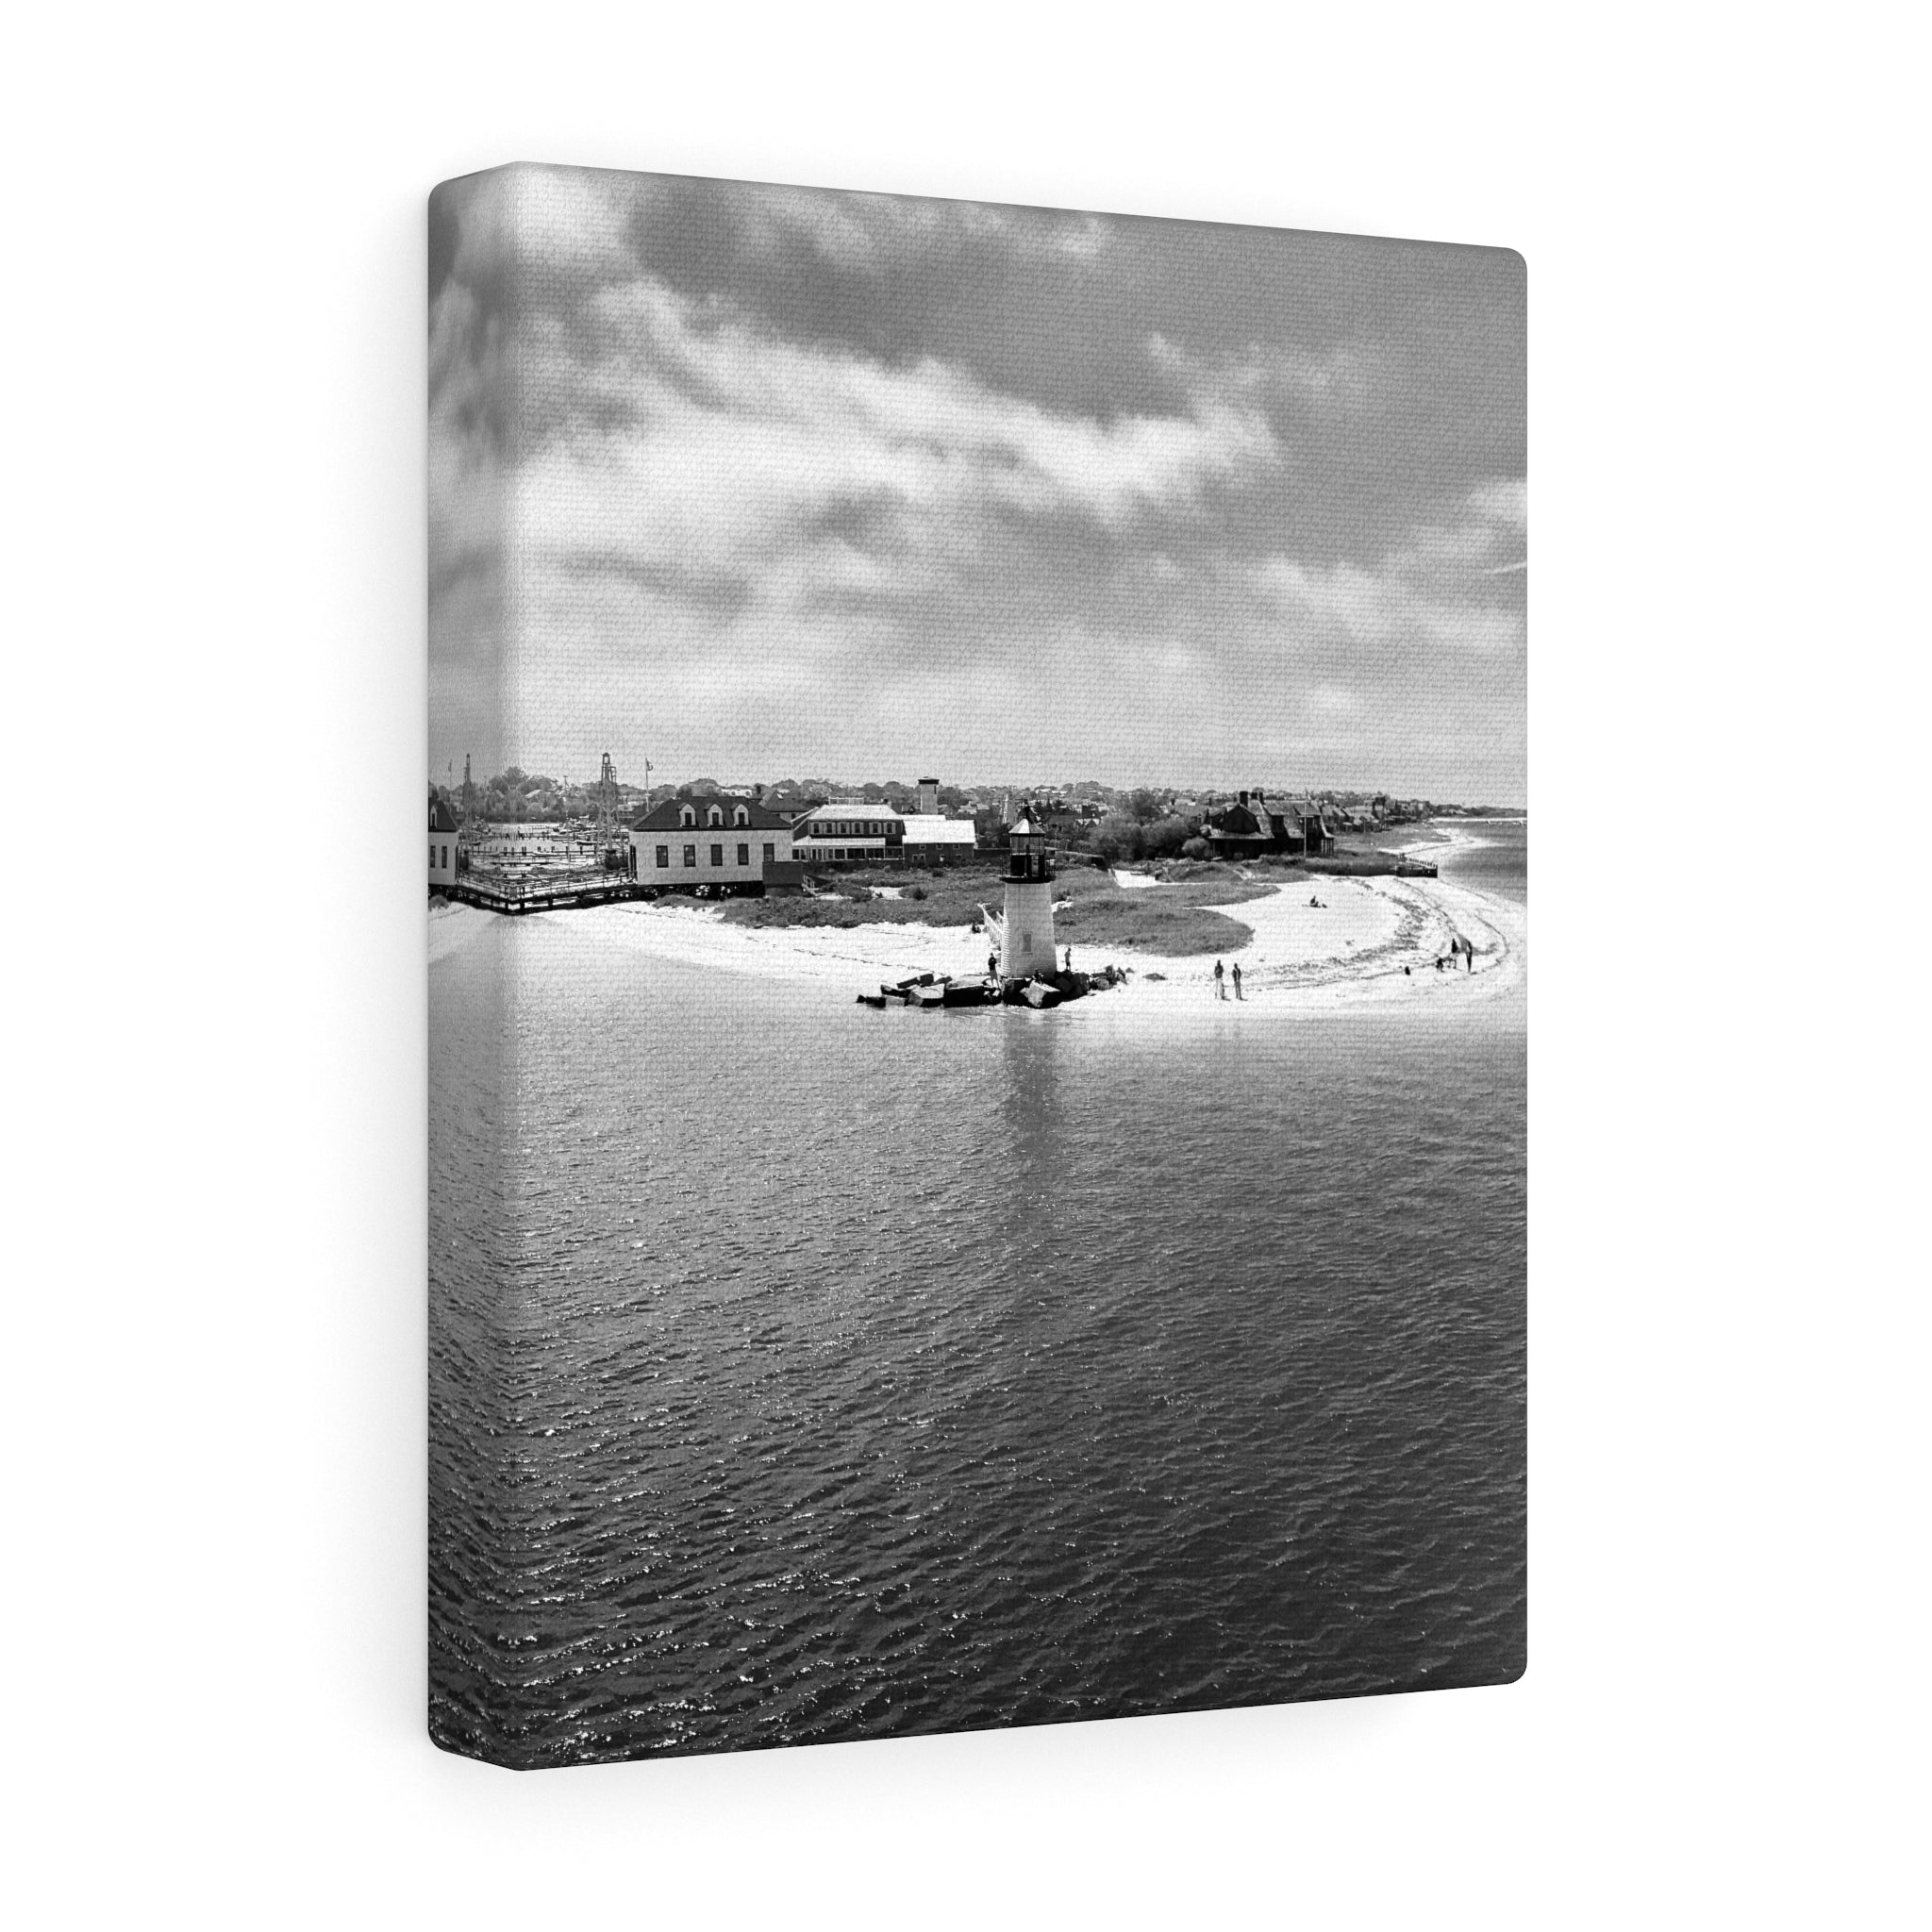 Nantucket Arrival II Monochrome Canvas Gallery Wrap